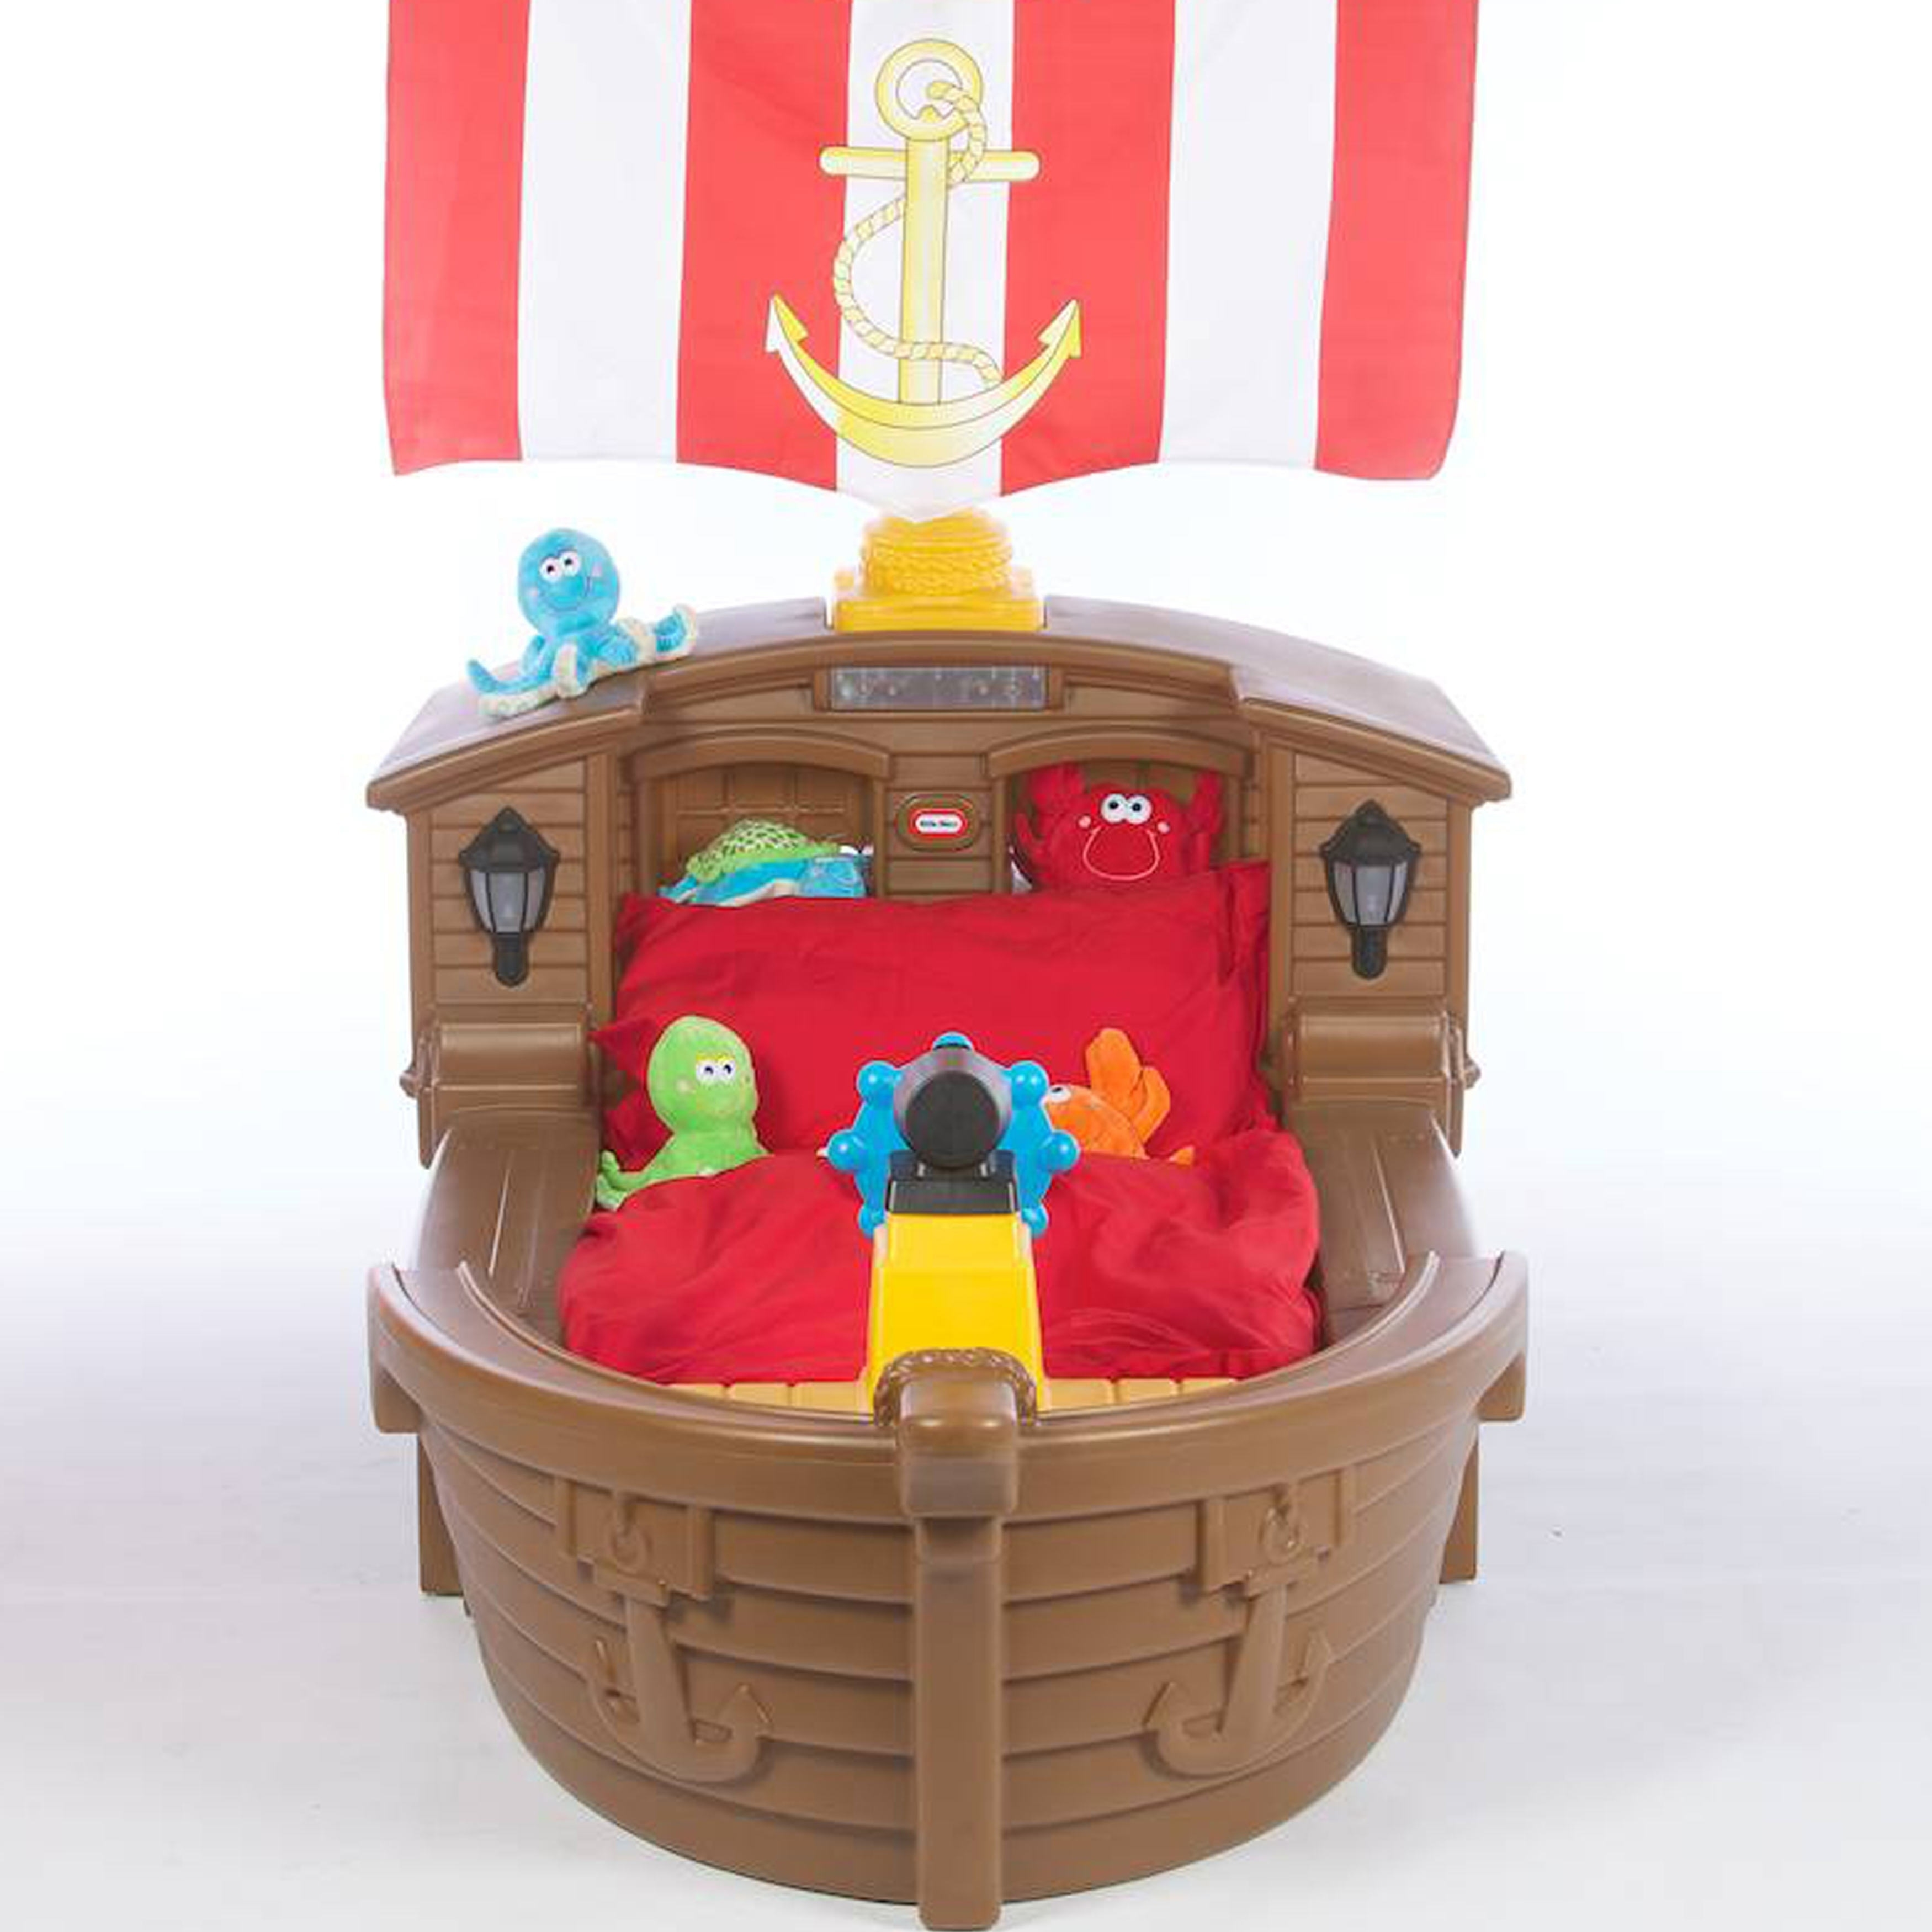 Pirate Ship Toddler Bed Overstock 29769066